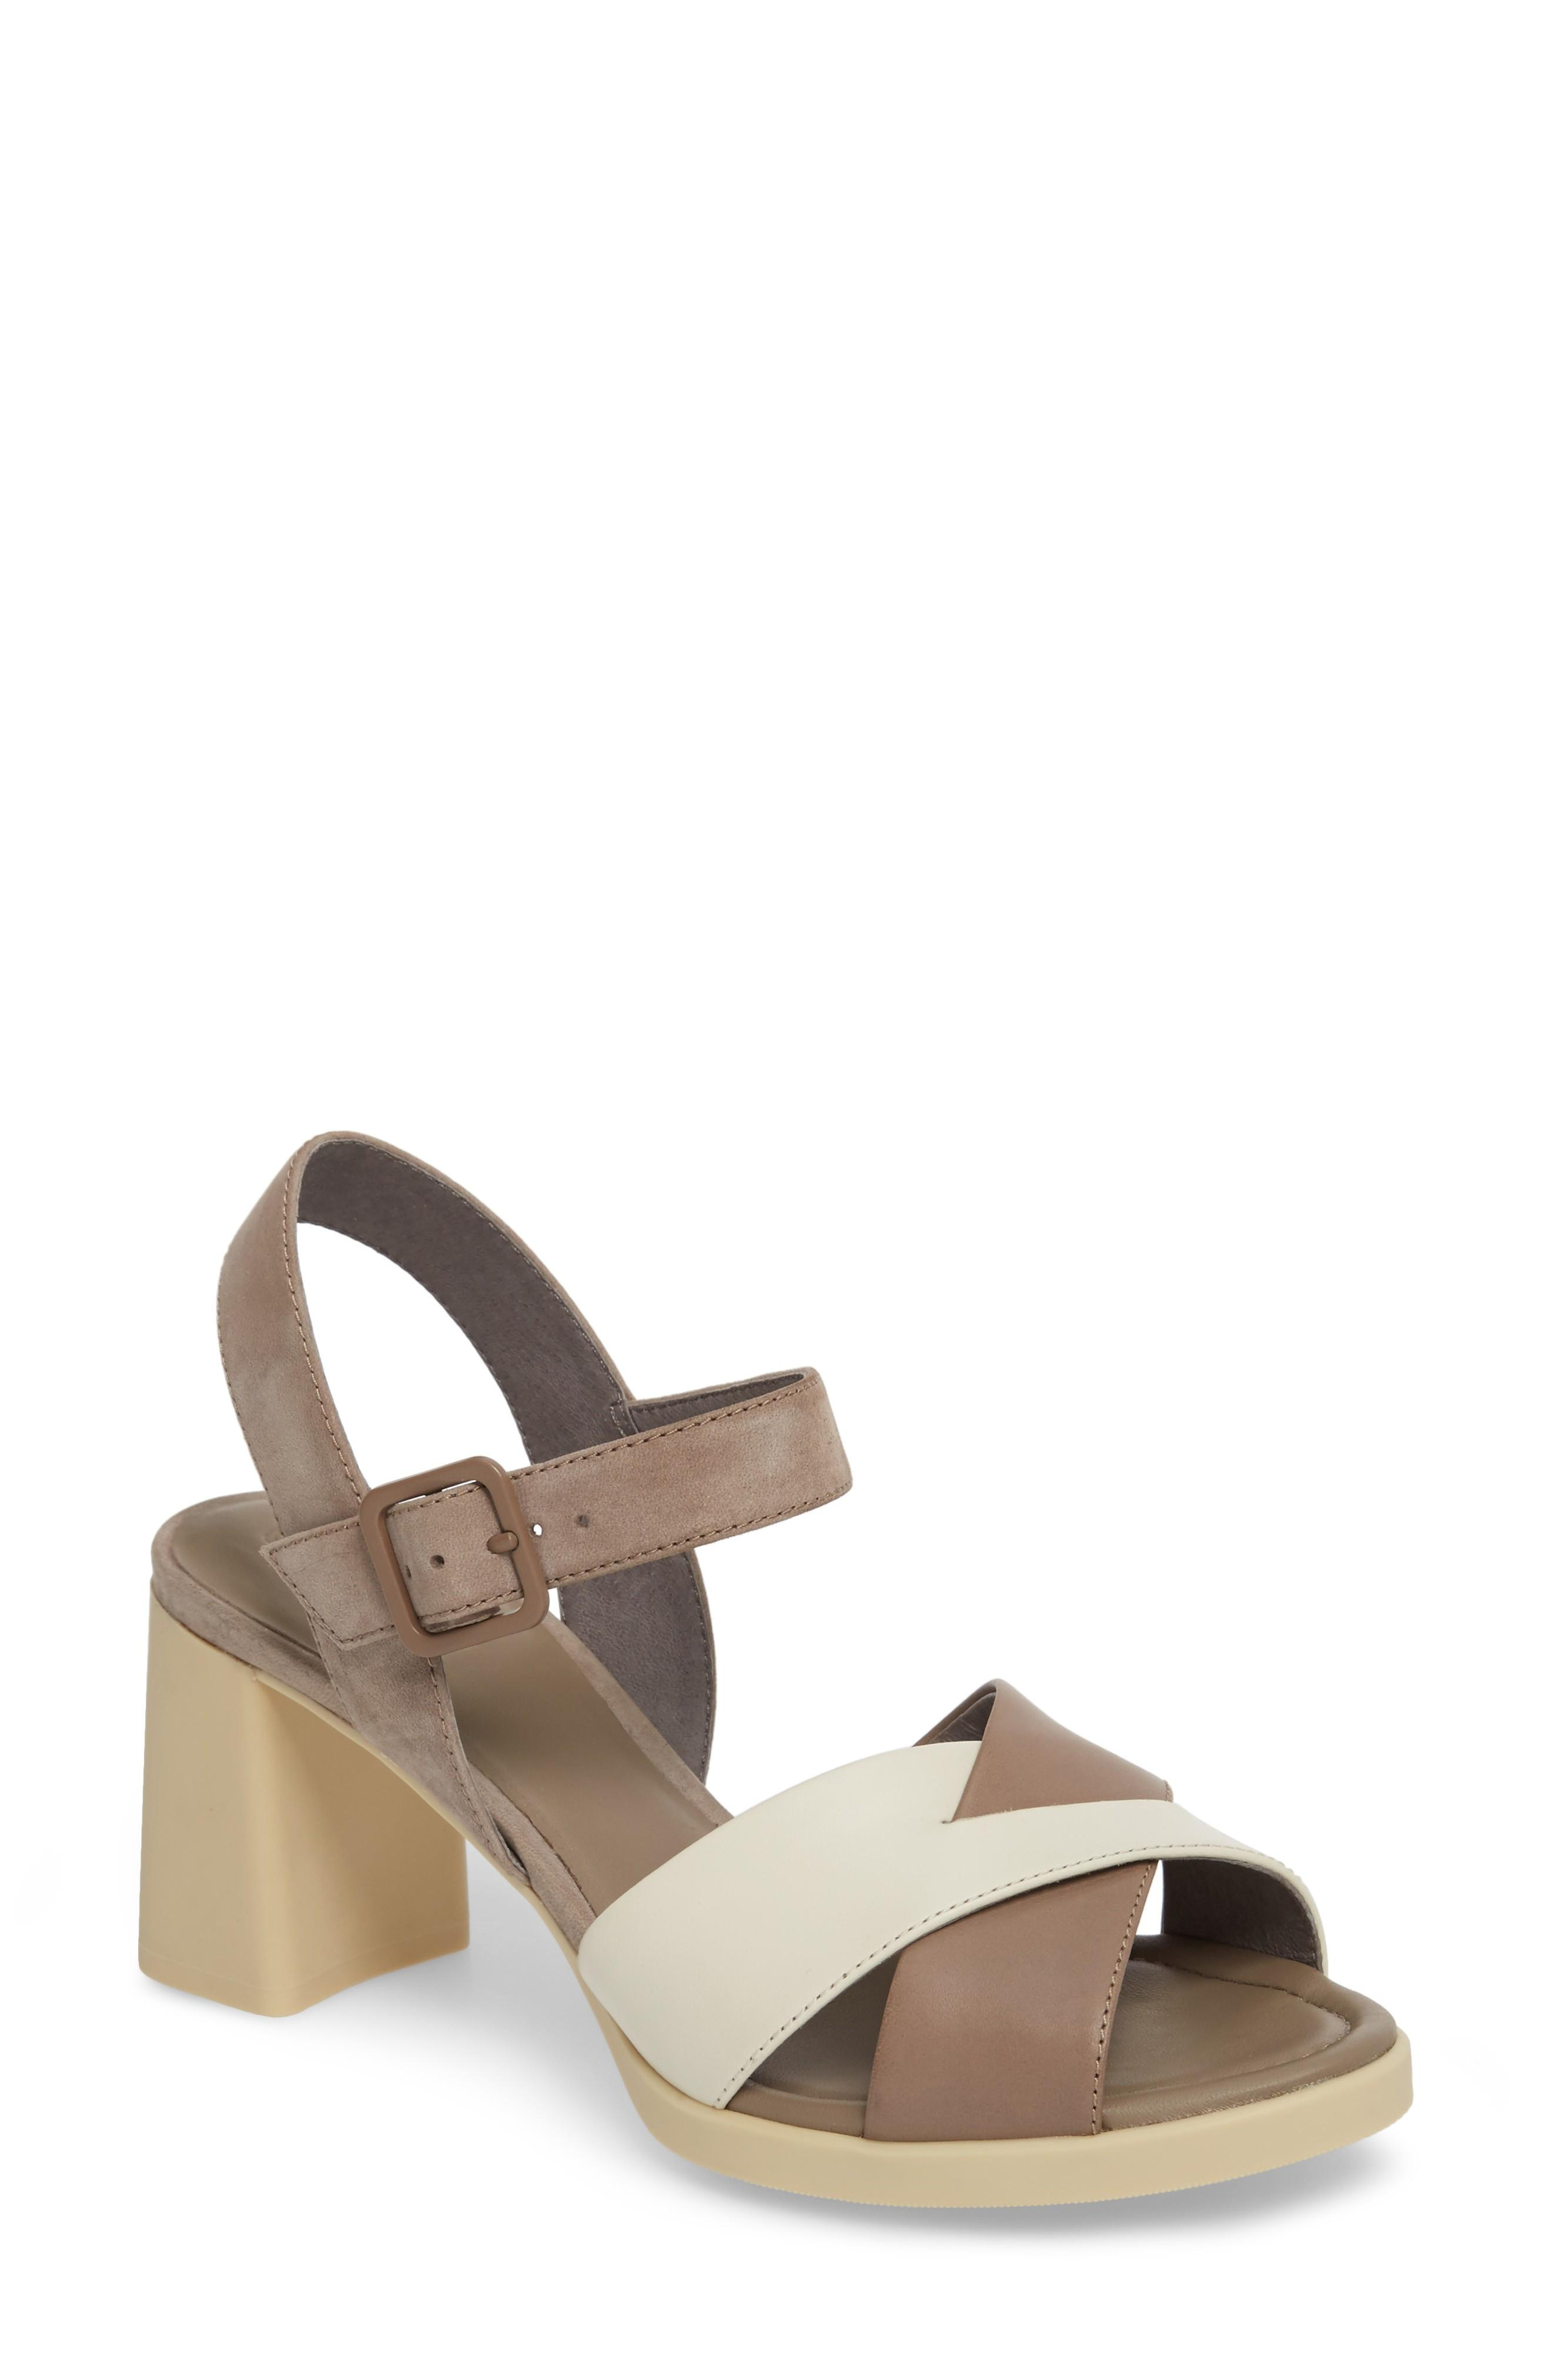 98f0a7d29b97 bold block heel. Style Name  Camper Kara Sandal (Women). Style Number   5545353. Available in stores.